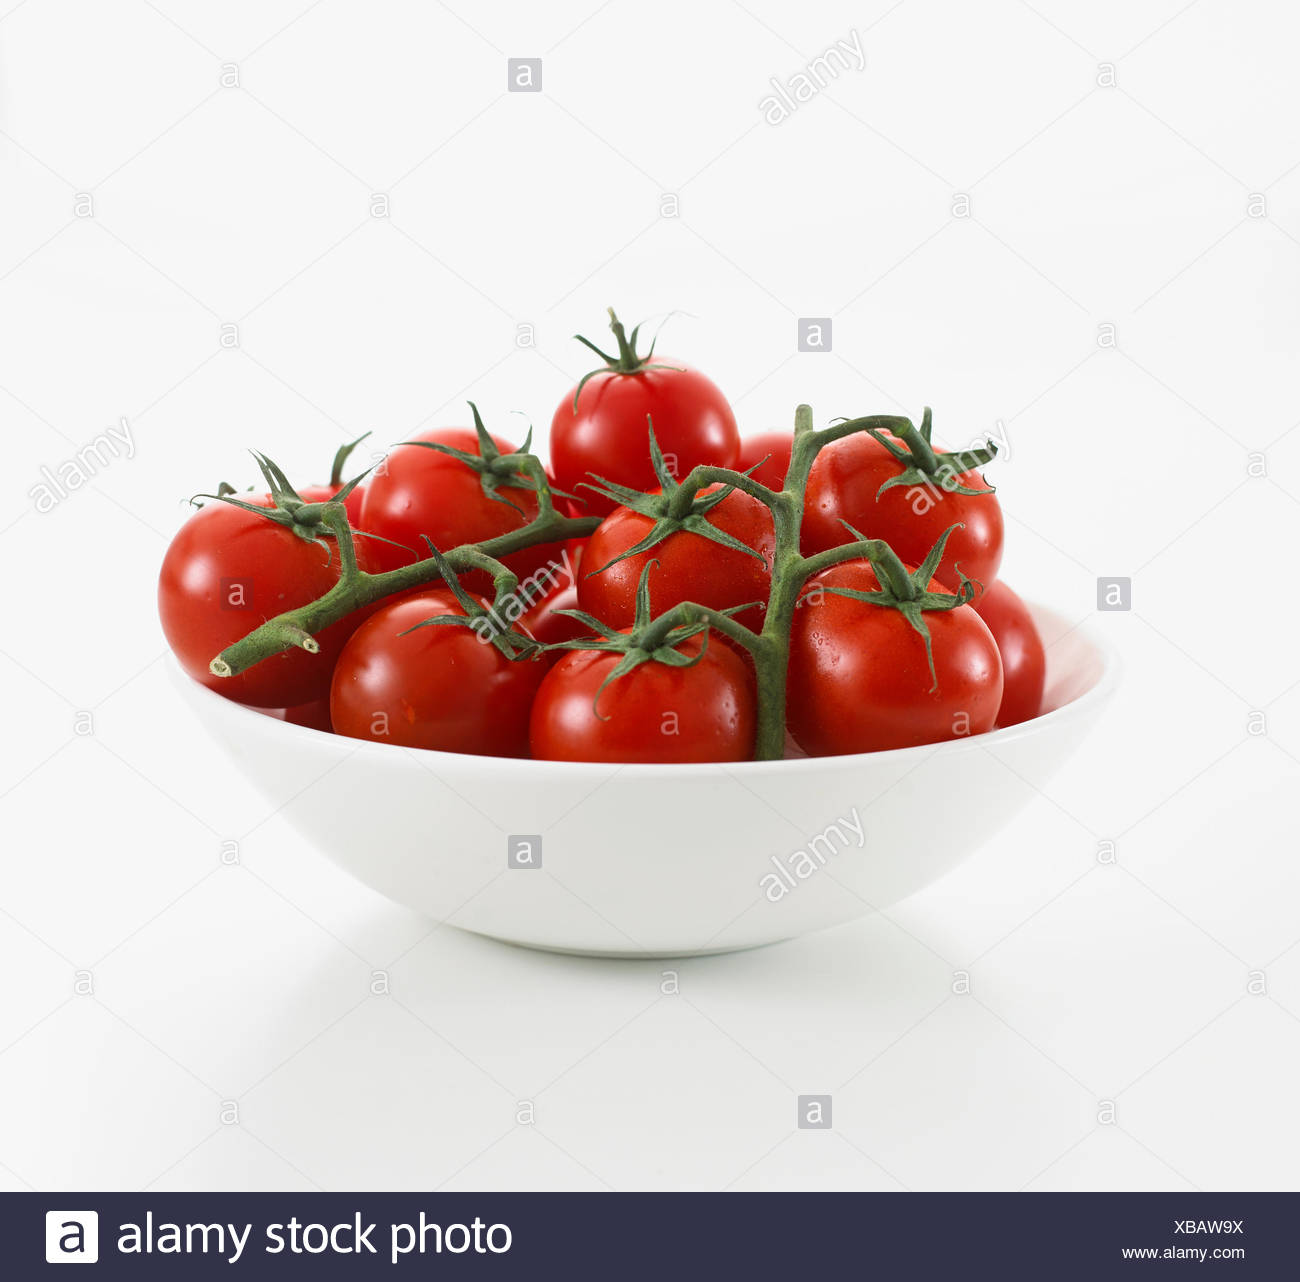 Bowl of cherry tomatoes - Stock Image